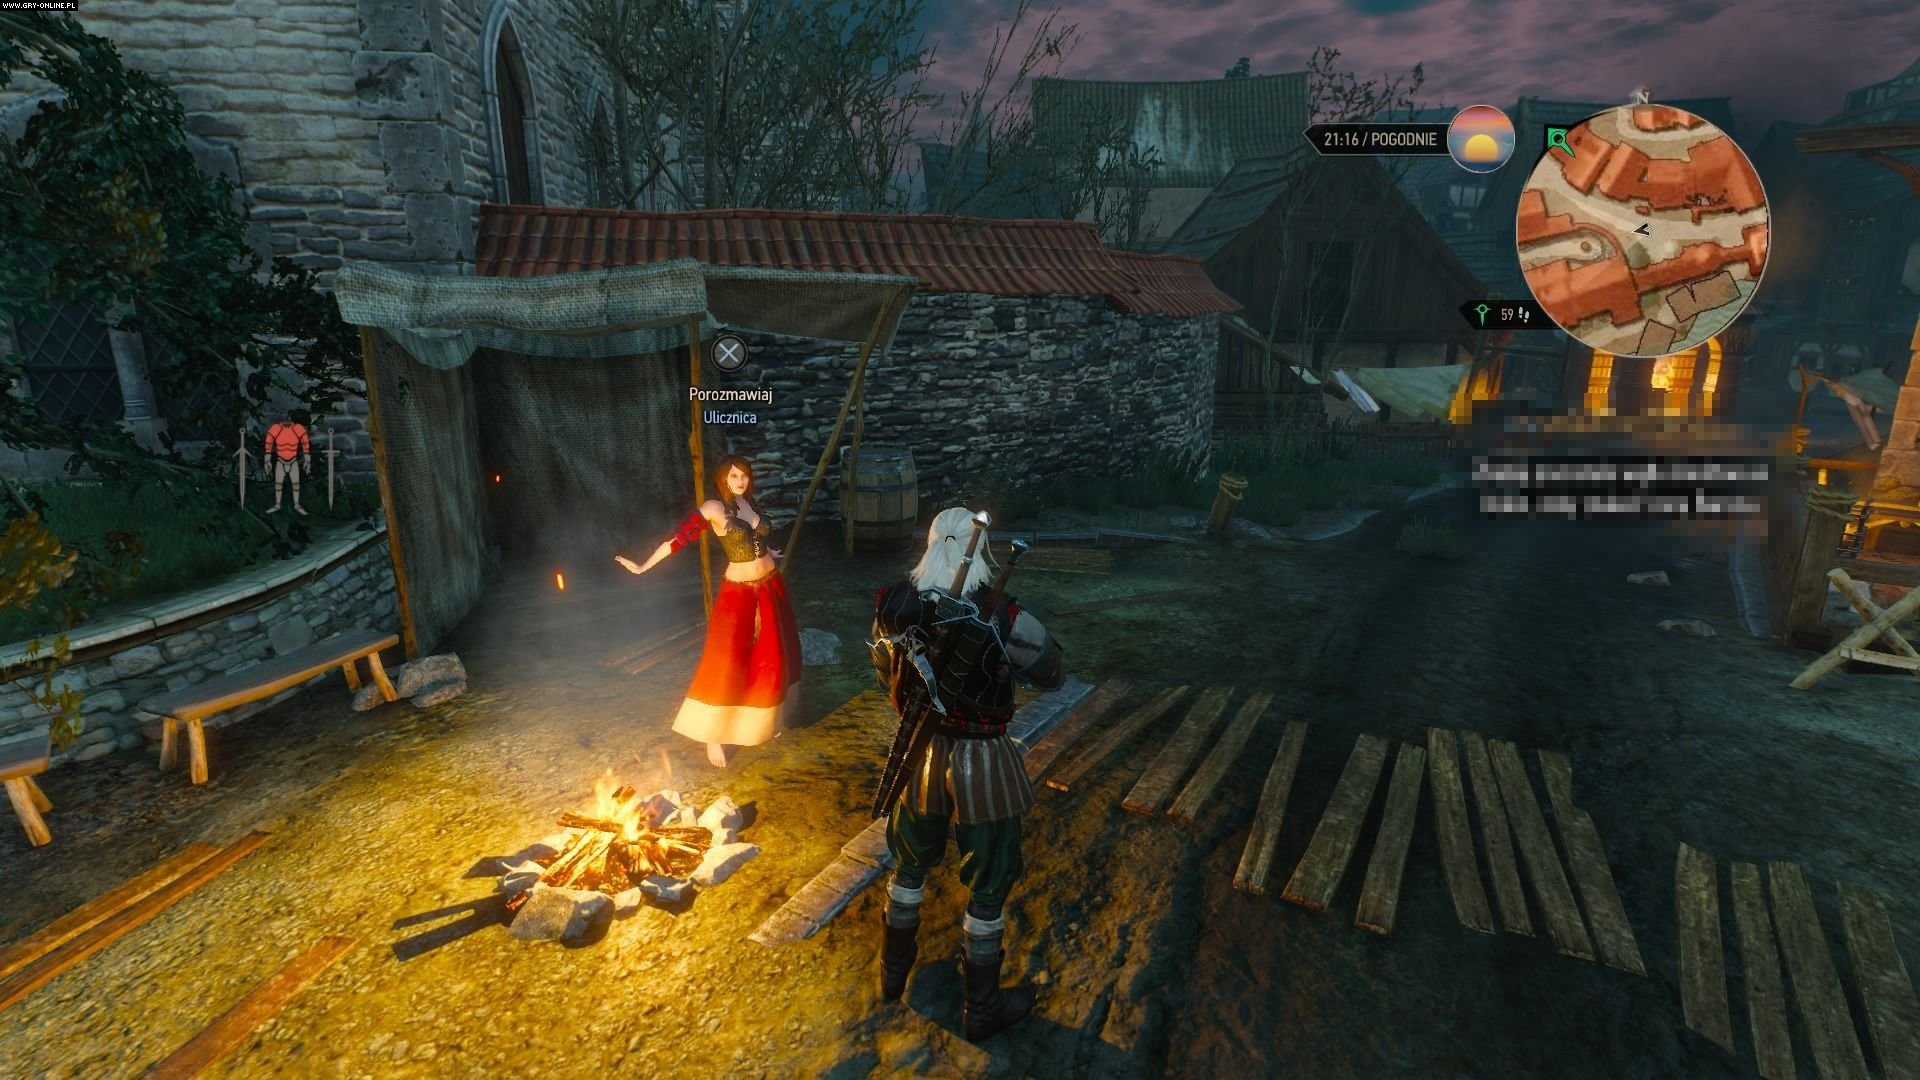 The Witcher 3: Wild Hunt PS4 Games Image 3/185, CD Projekt RED, Bandai Namco Entertainment